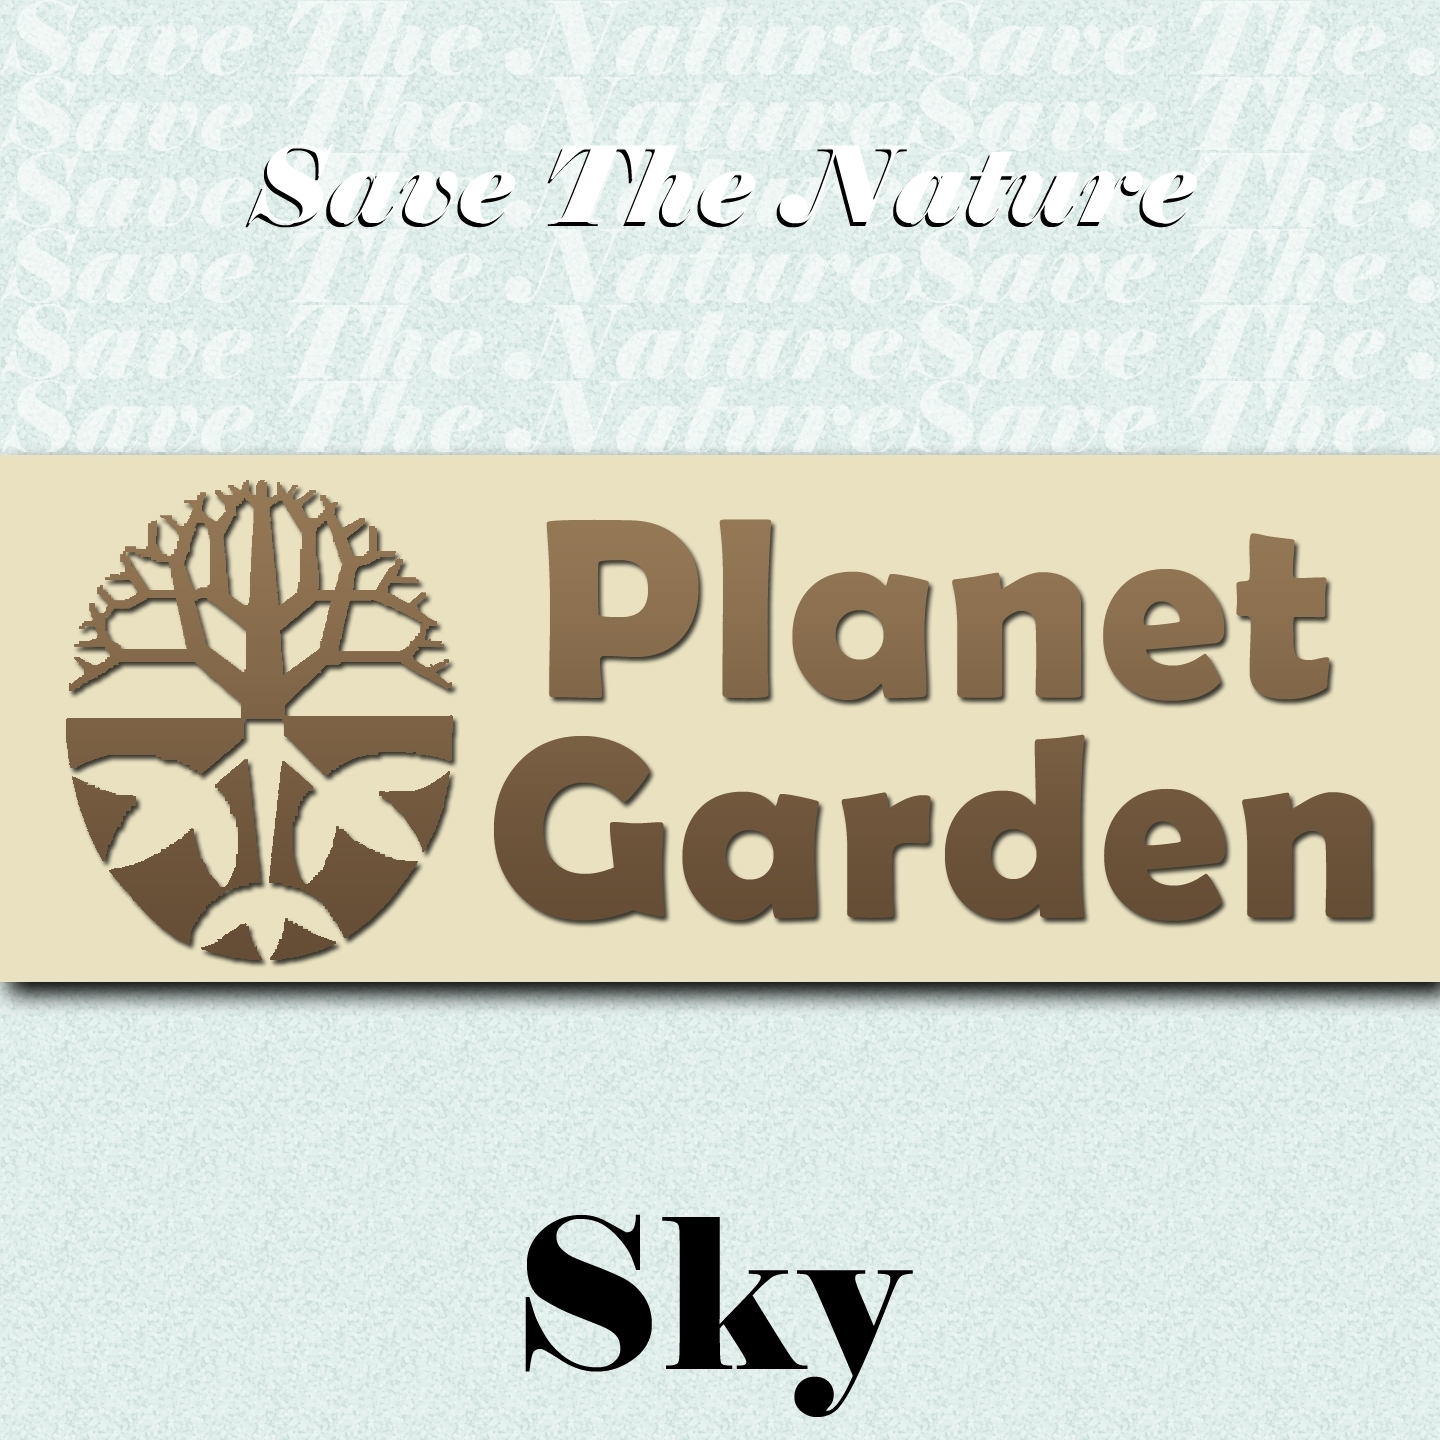 Save the Nature Planet Garden: Sky